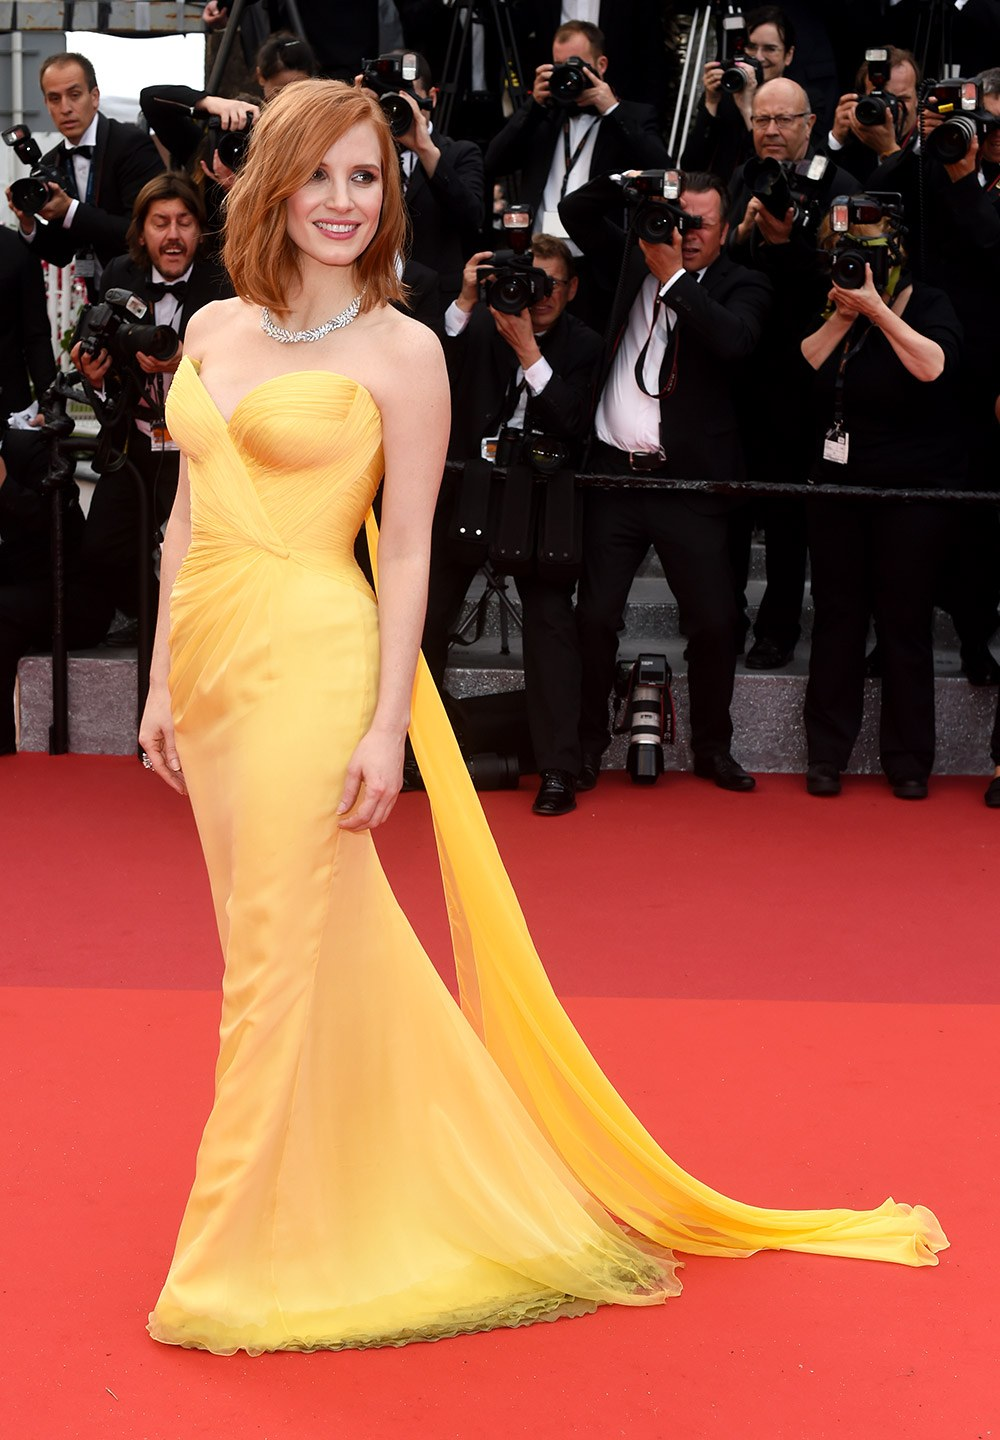 Jessica Chastain photo gallery - page #2 | Celebs-Place.com